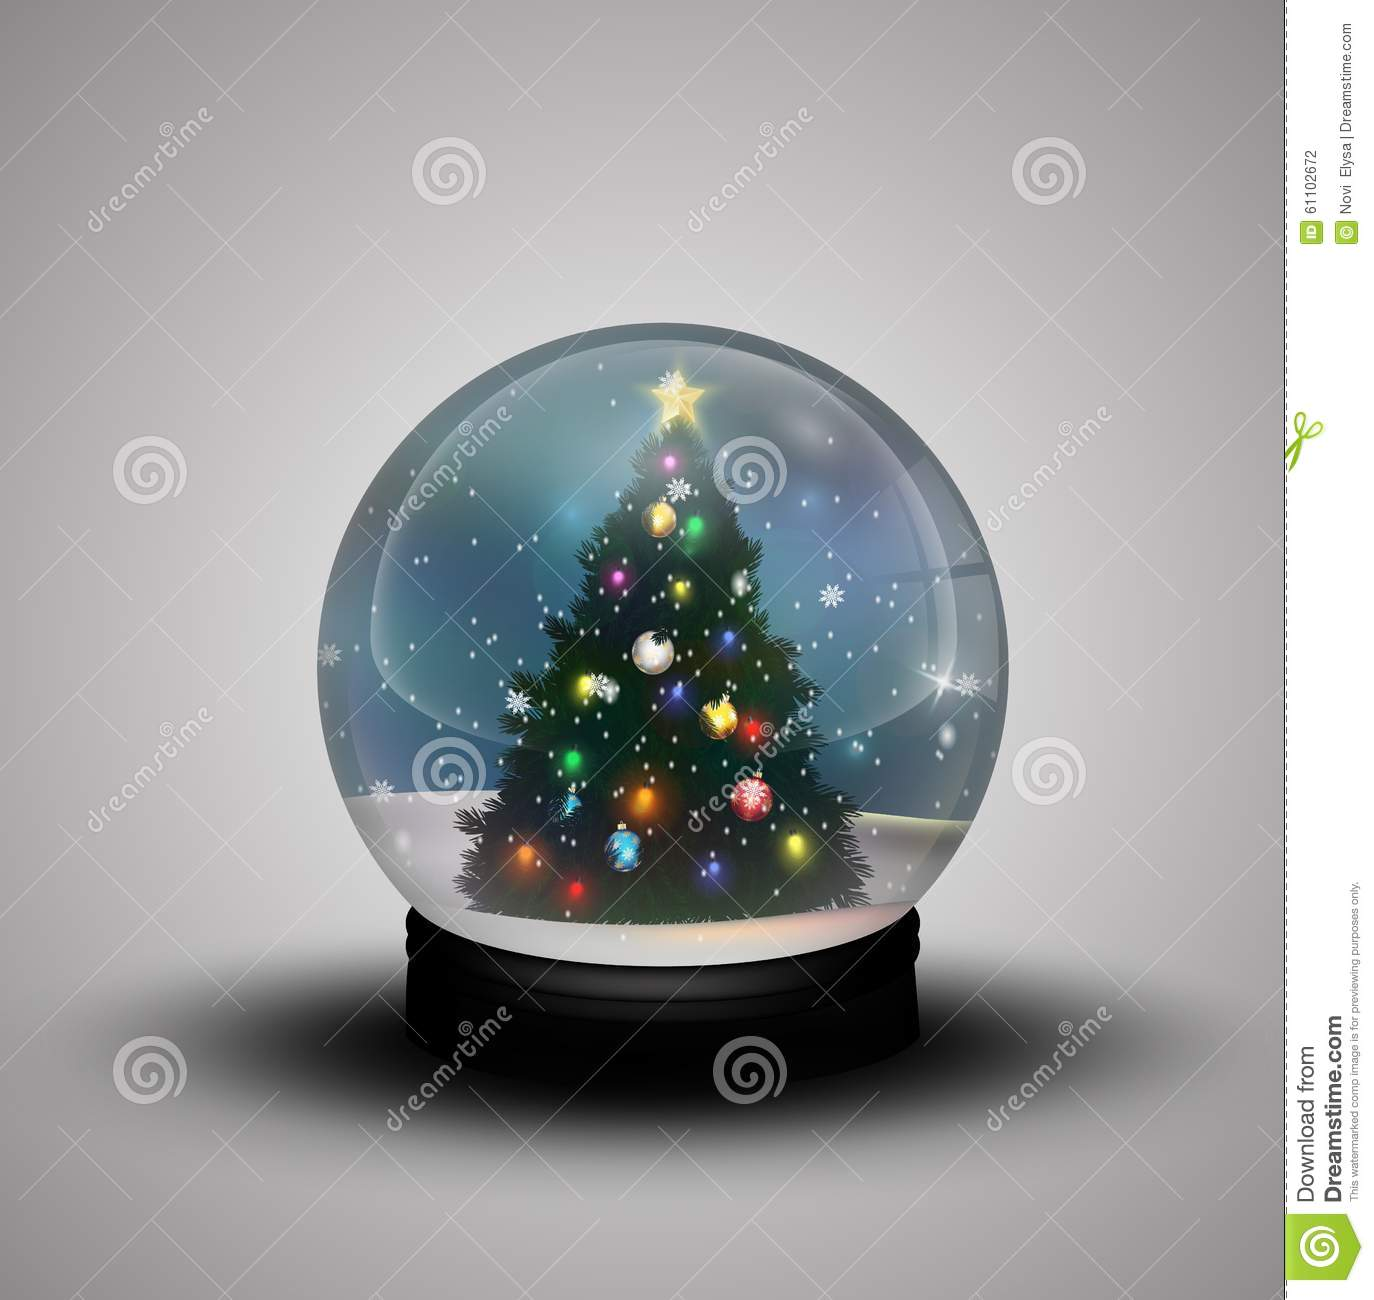 glass dome winter with realistic christmas snow globe with christmas tree